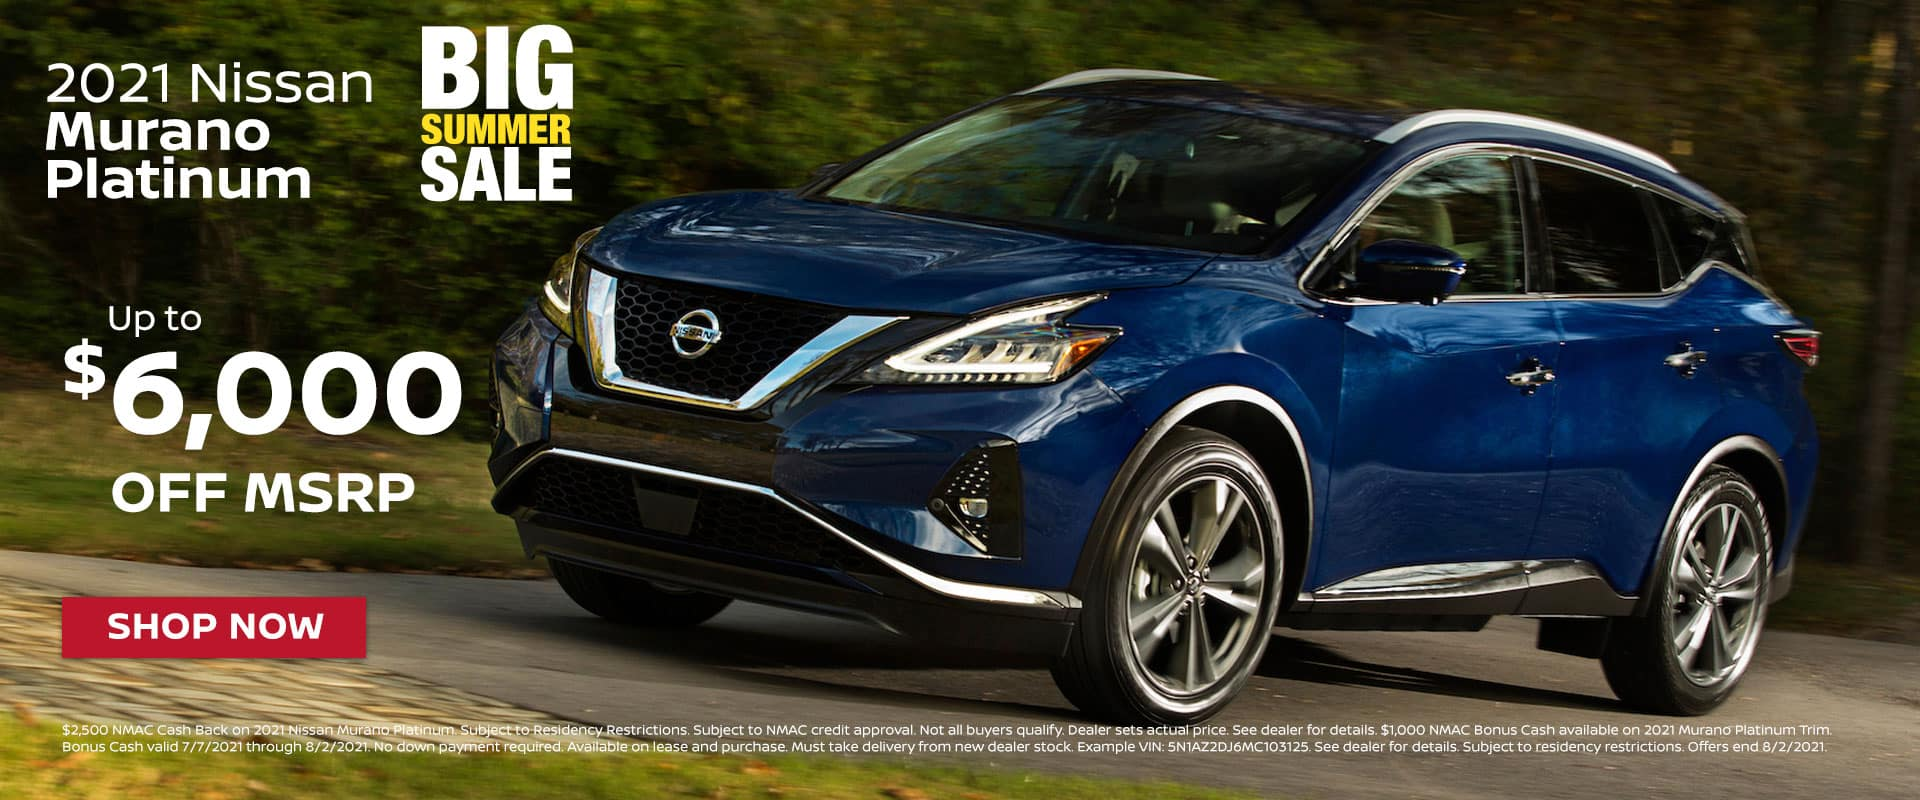 New 2021 Nissan Murano Platinum For Sale In Greenville